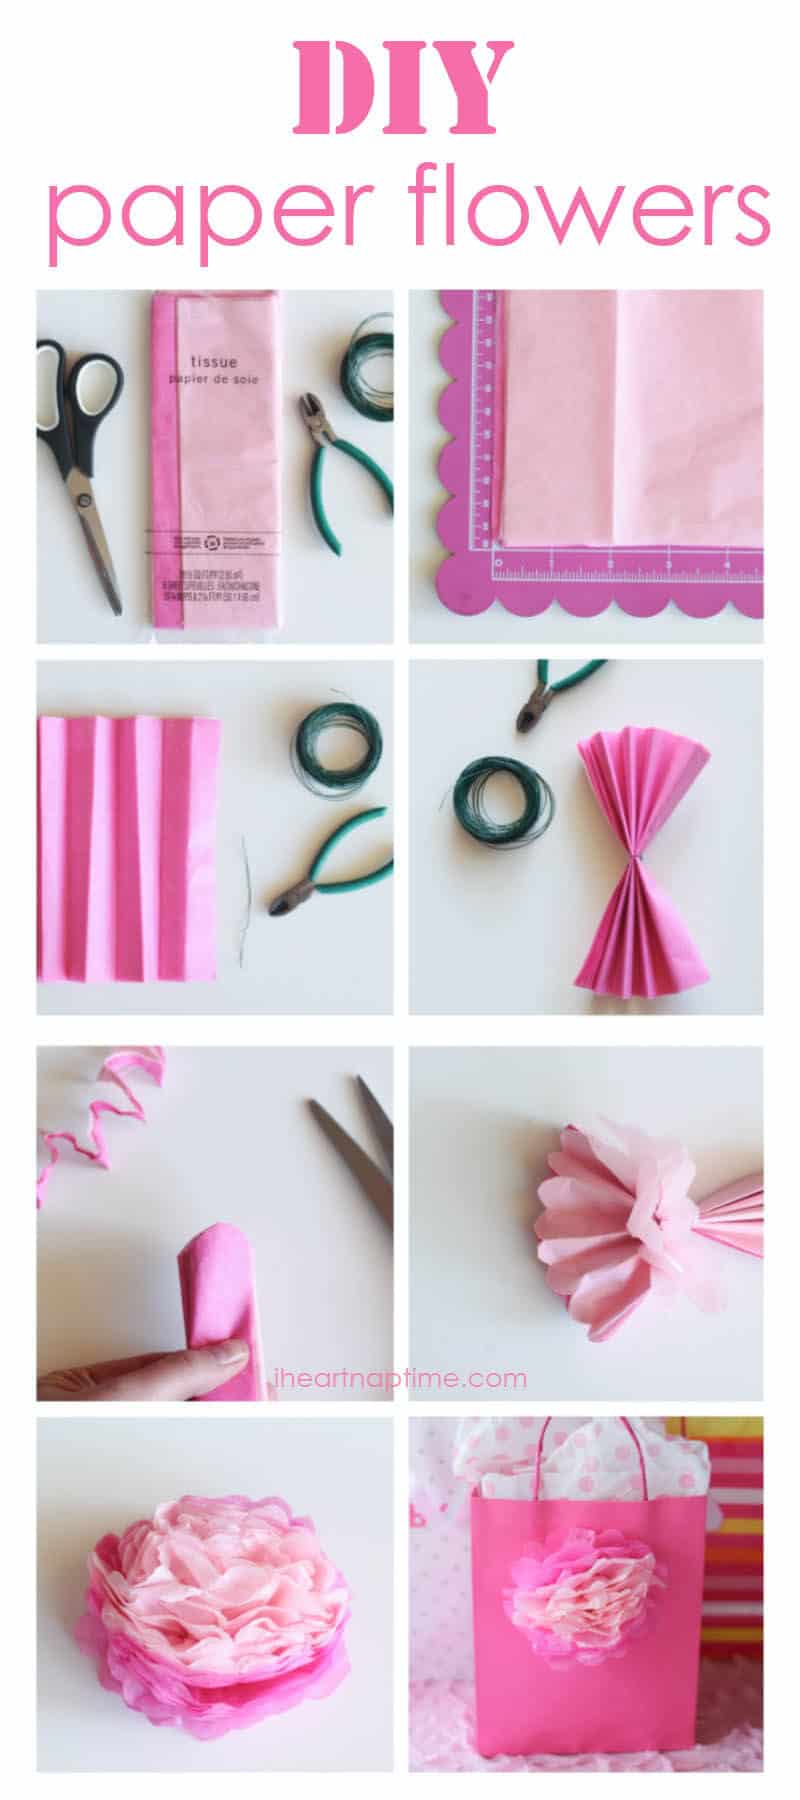 How do you make tissue paper flowers custom paper academic writing how do you make tissue paper flowers mightylinksfo